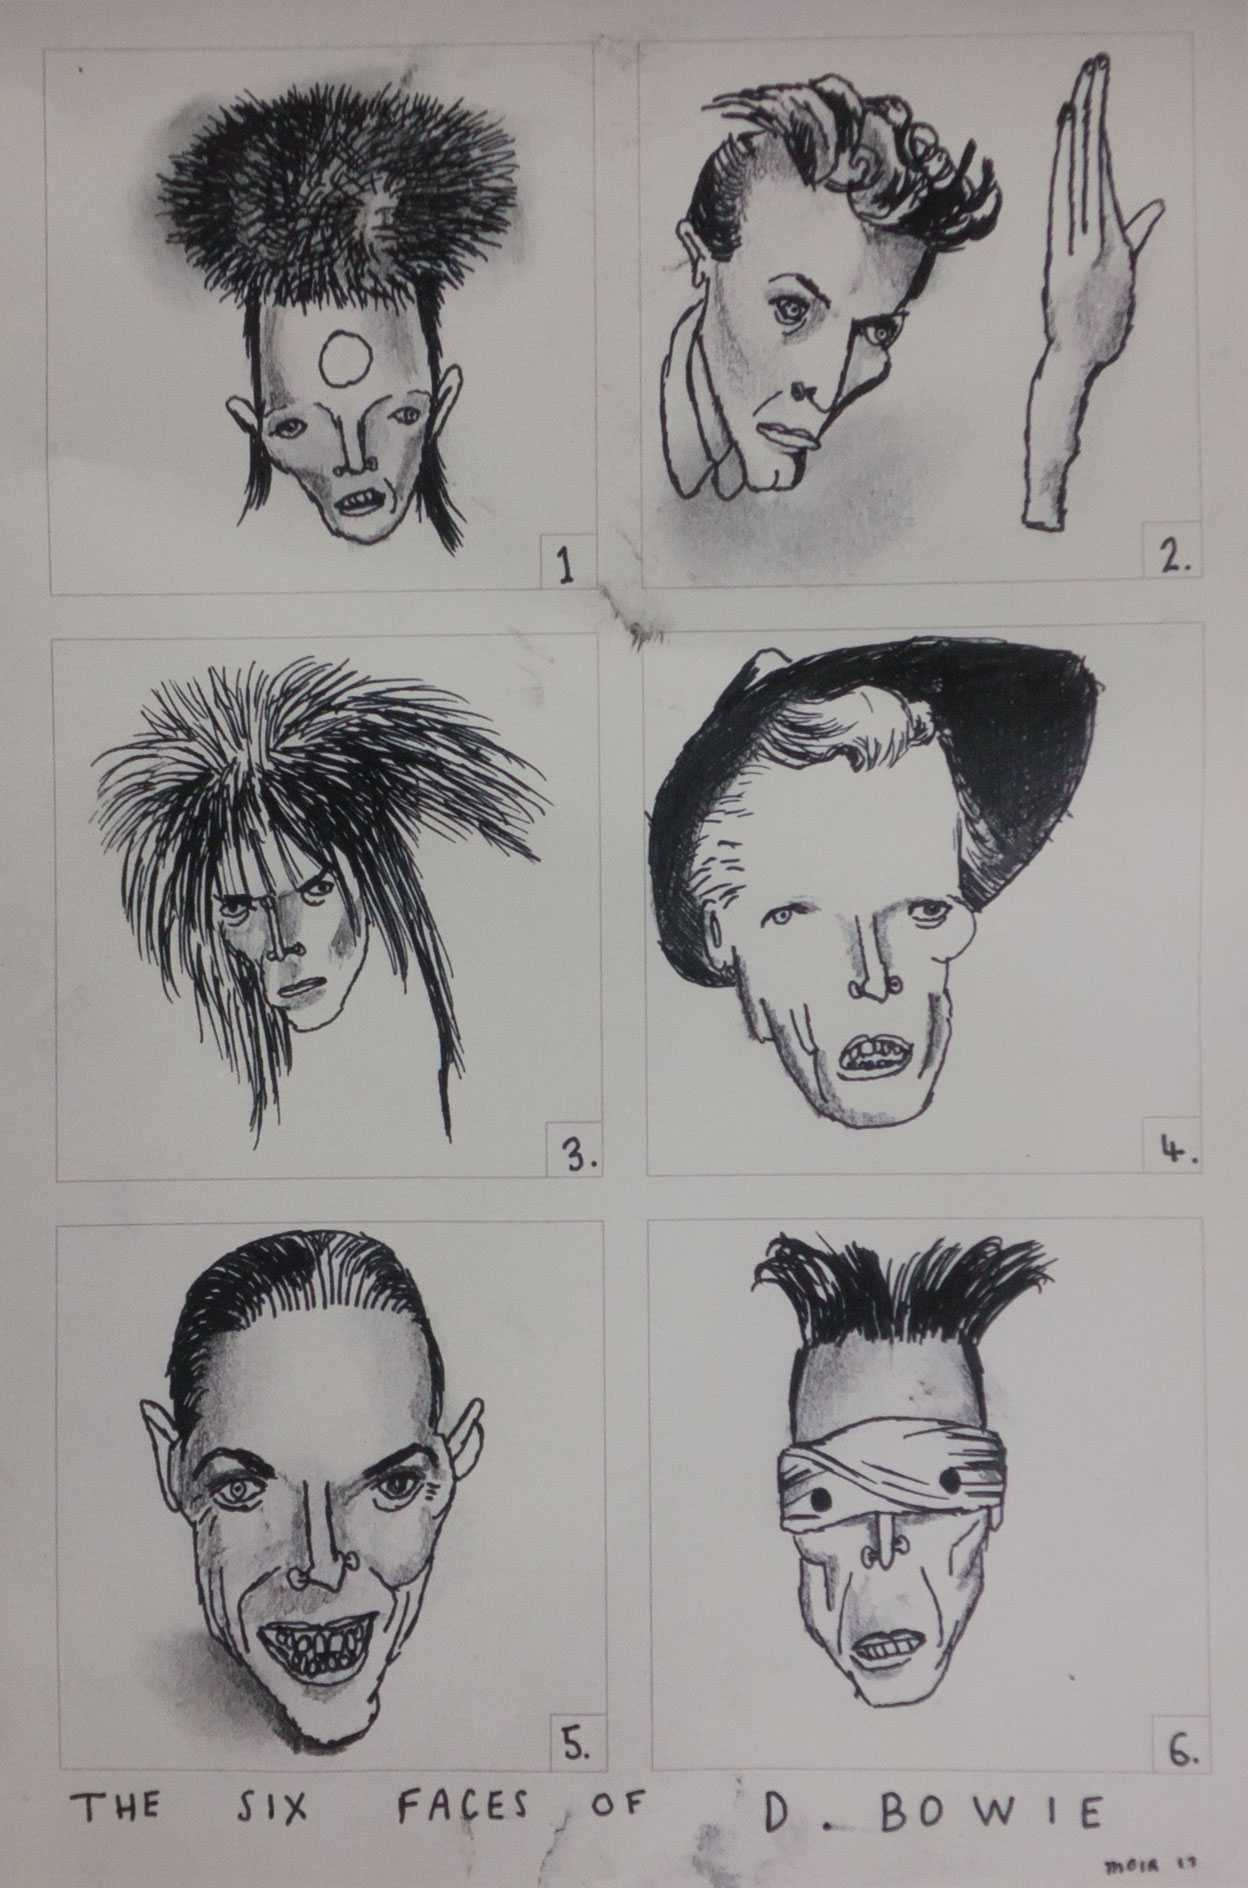 The Six Faces of David Bowie - Limited edition print by Vic Reeves